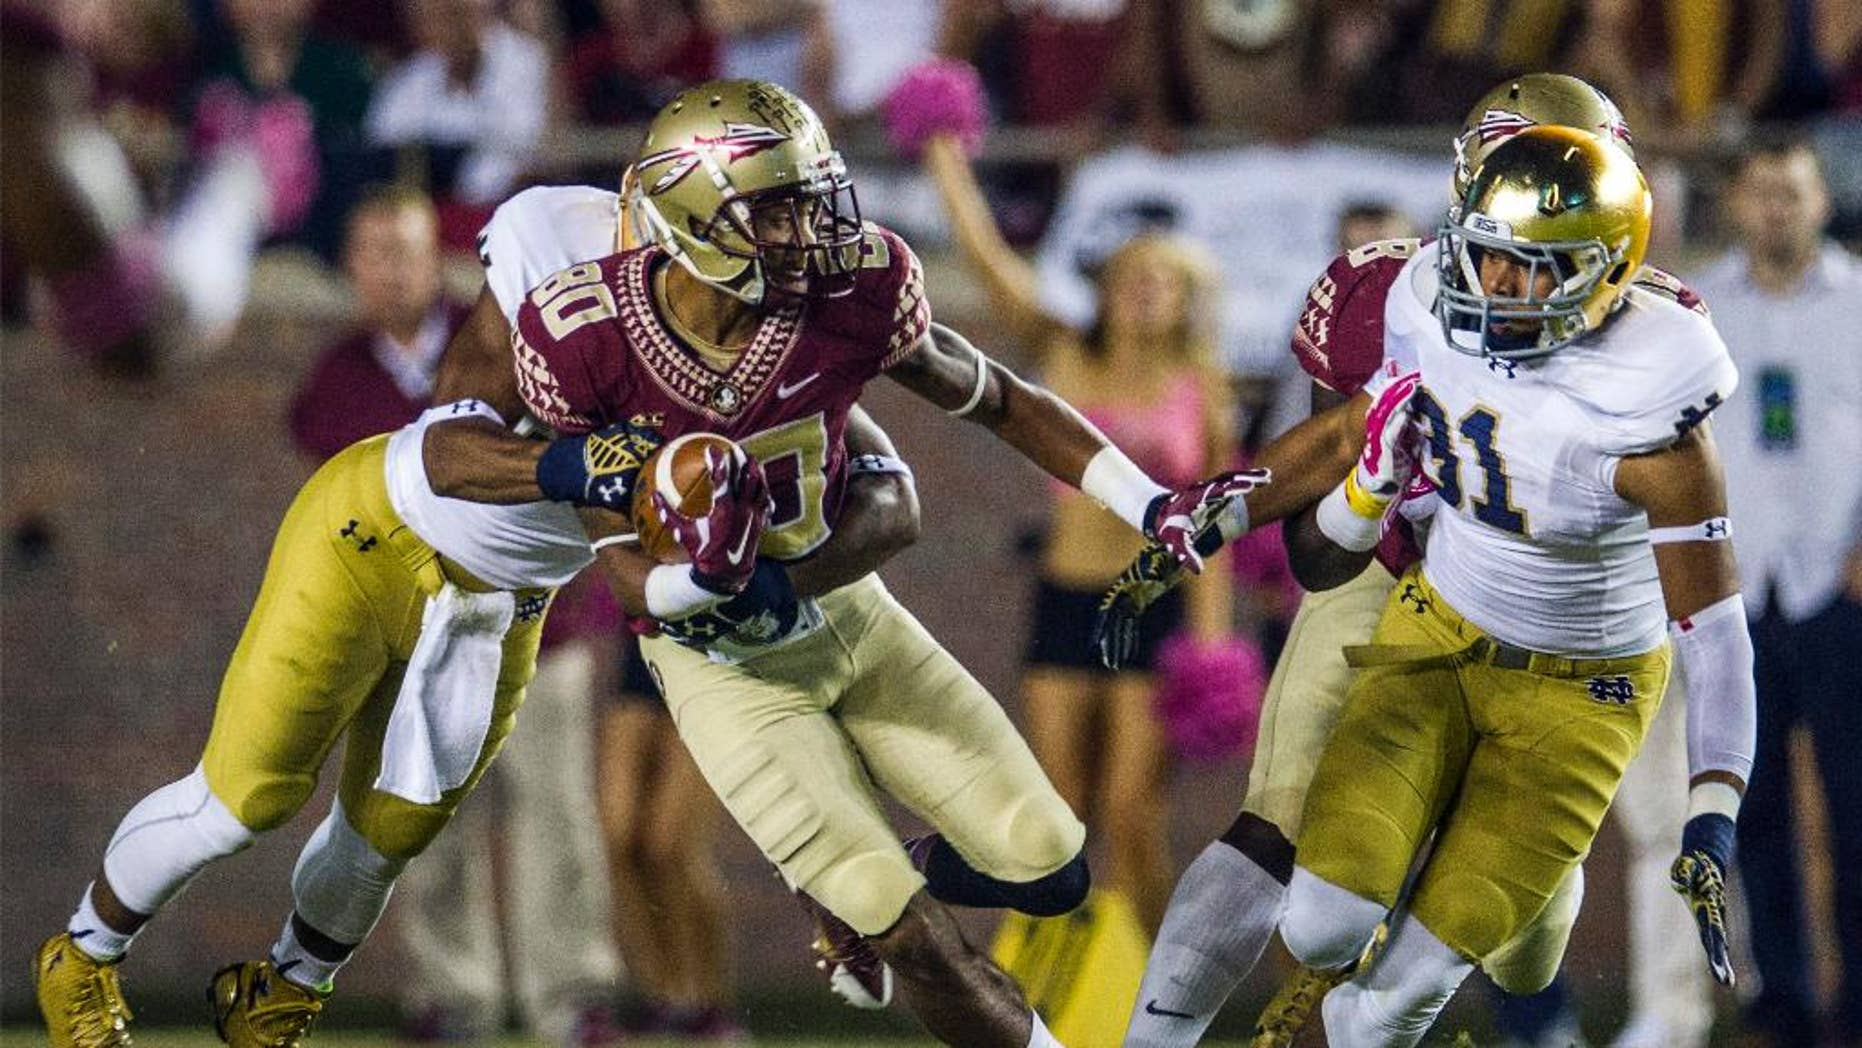 Florida State's Rashad Greene (80) returns a kickoff in the first half of an NCAA college football game against Notre Dame in Tallahassee, Fla., Saturday, Oct. 18, 2014. (AP Photo/Mark Wallheiser)